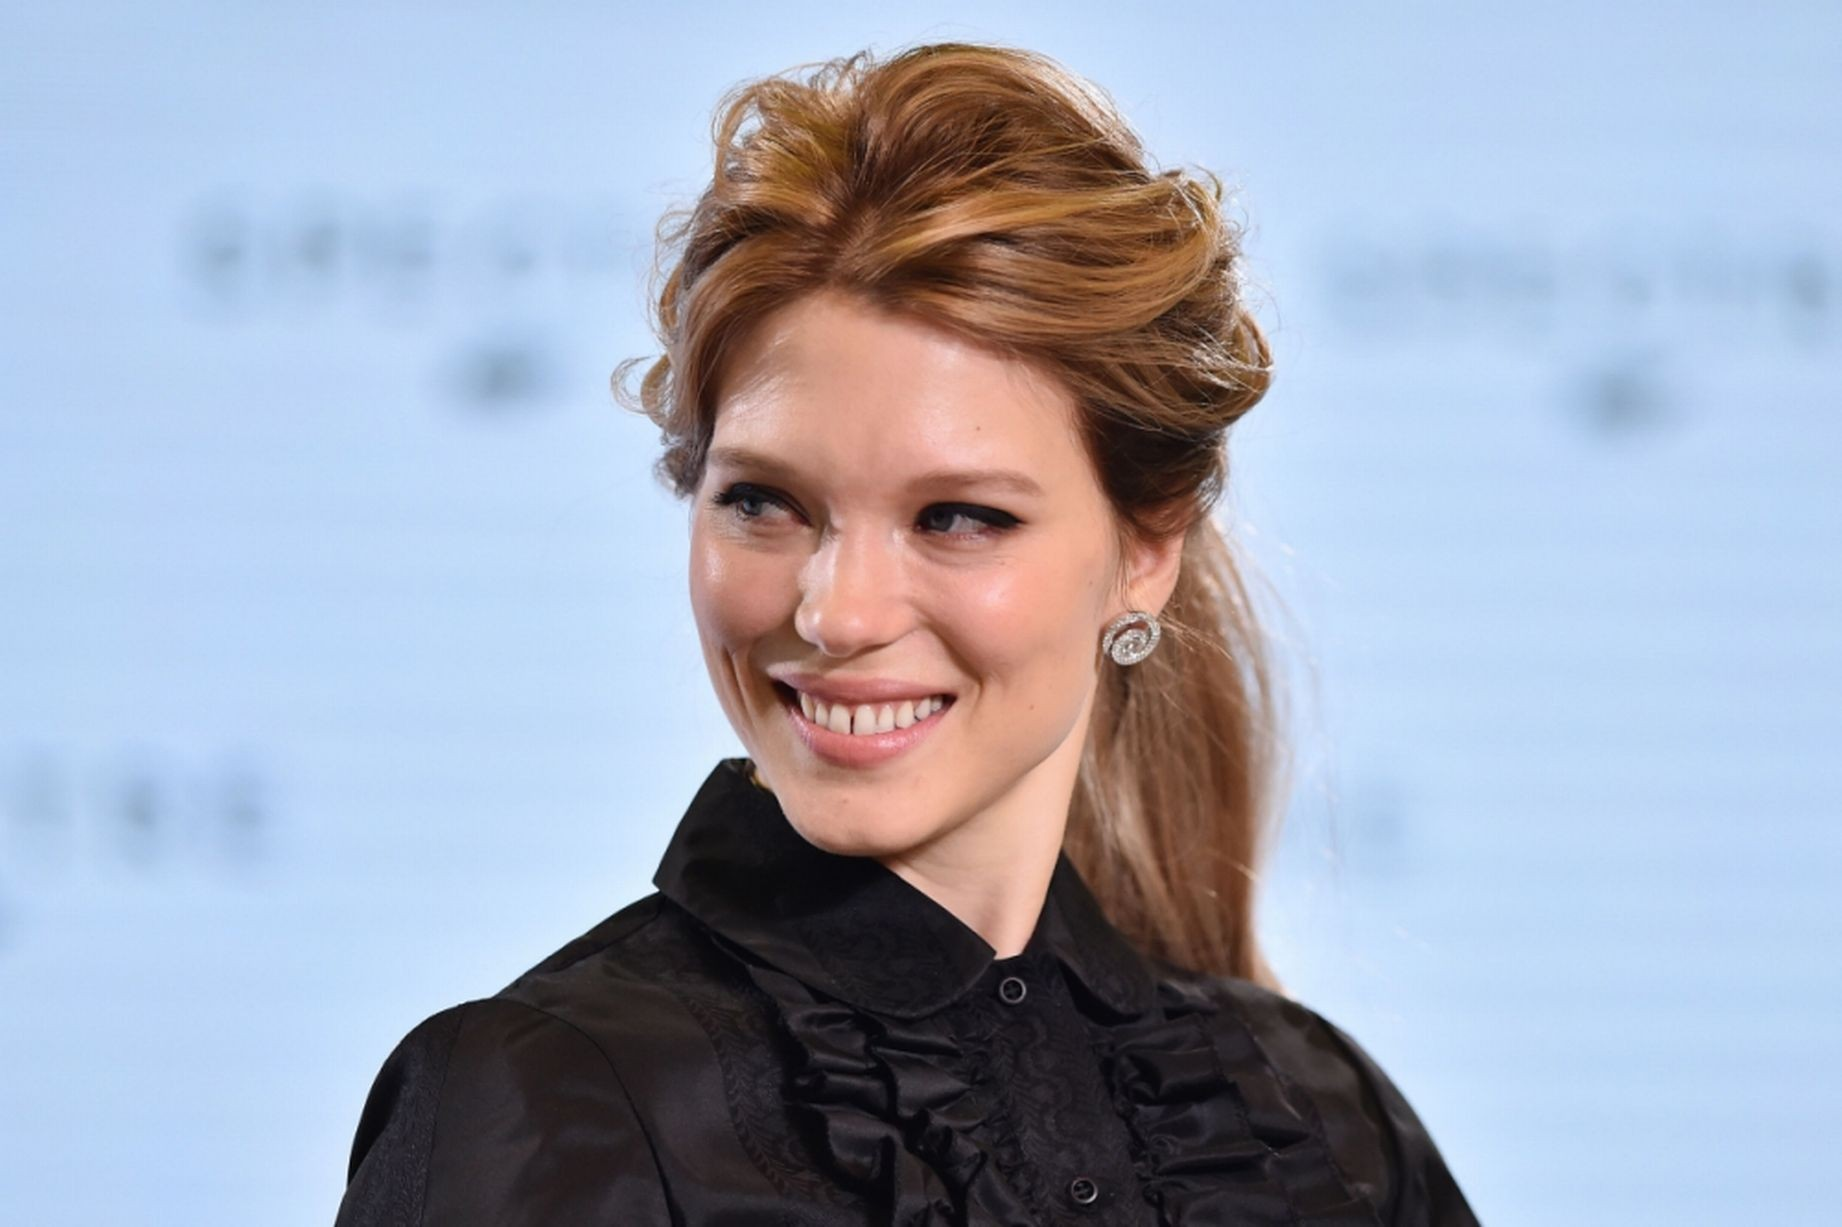 Mind Blowing Lea Seydoux Screensavers Free Download Smile Pics Hd